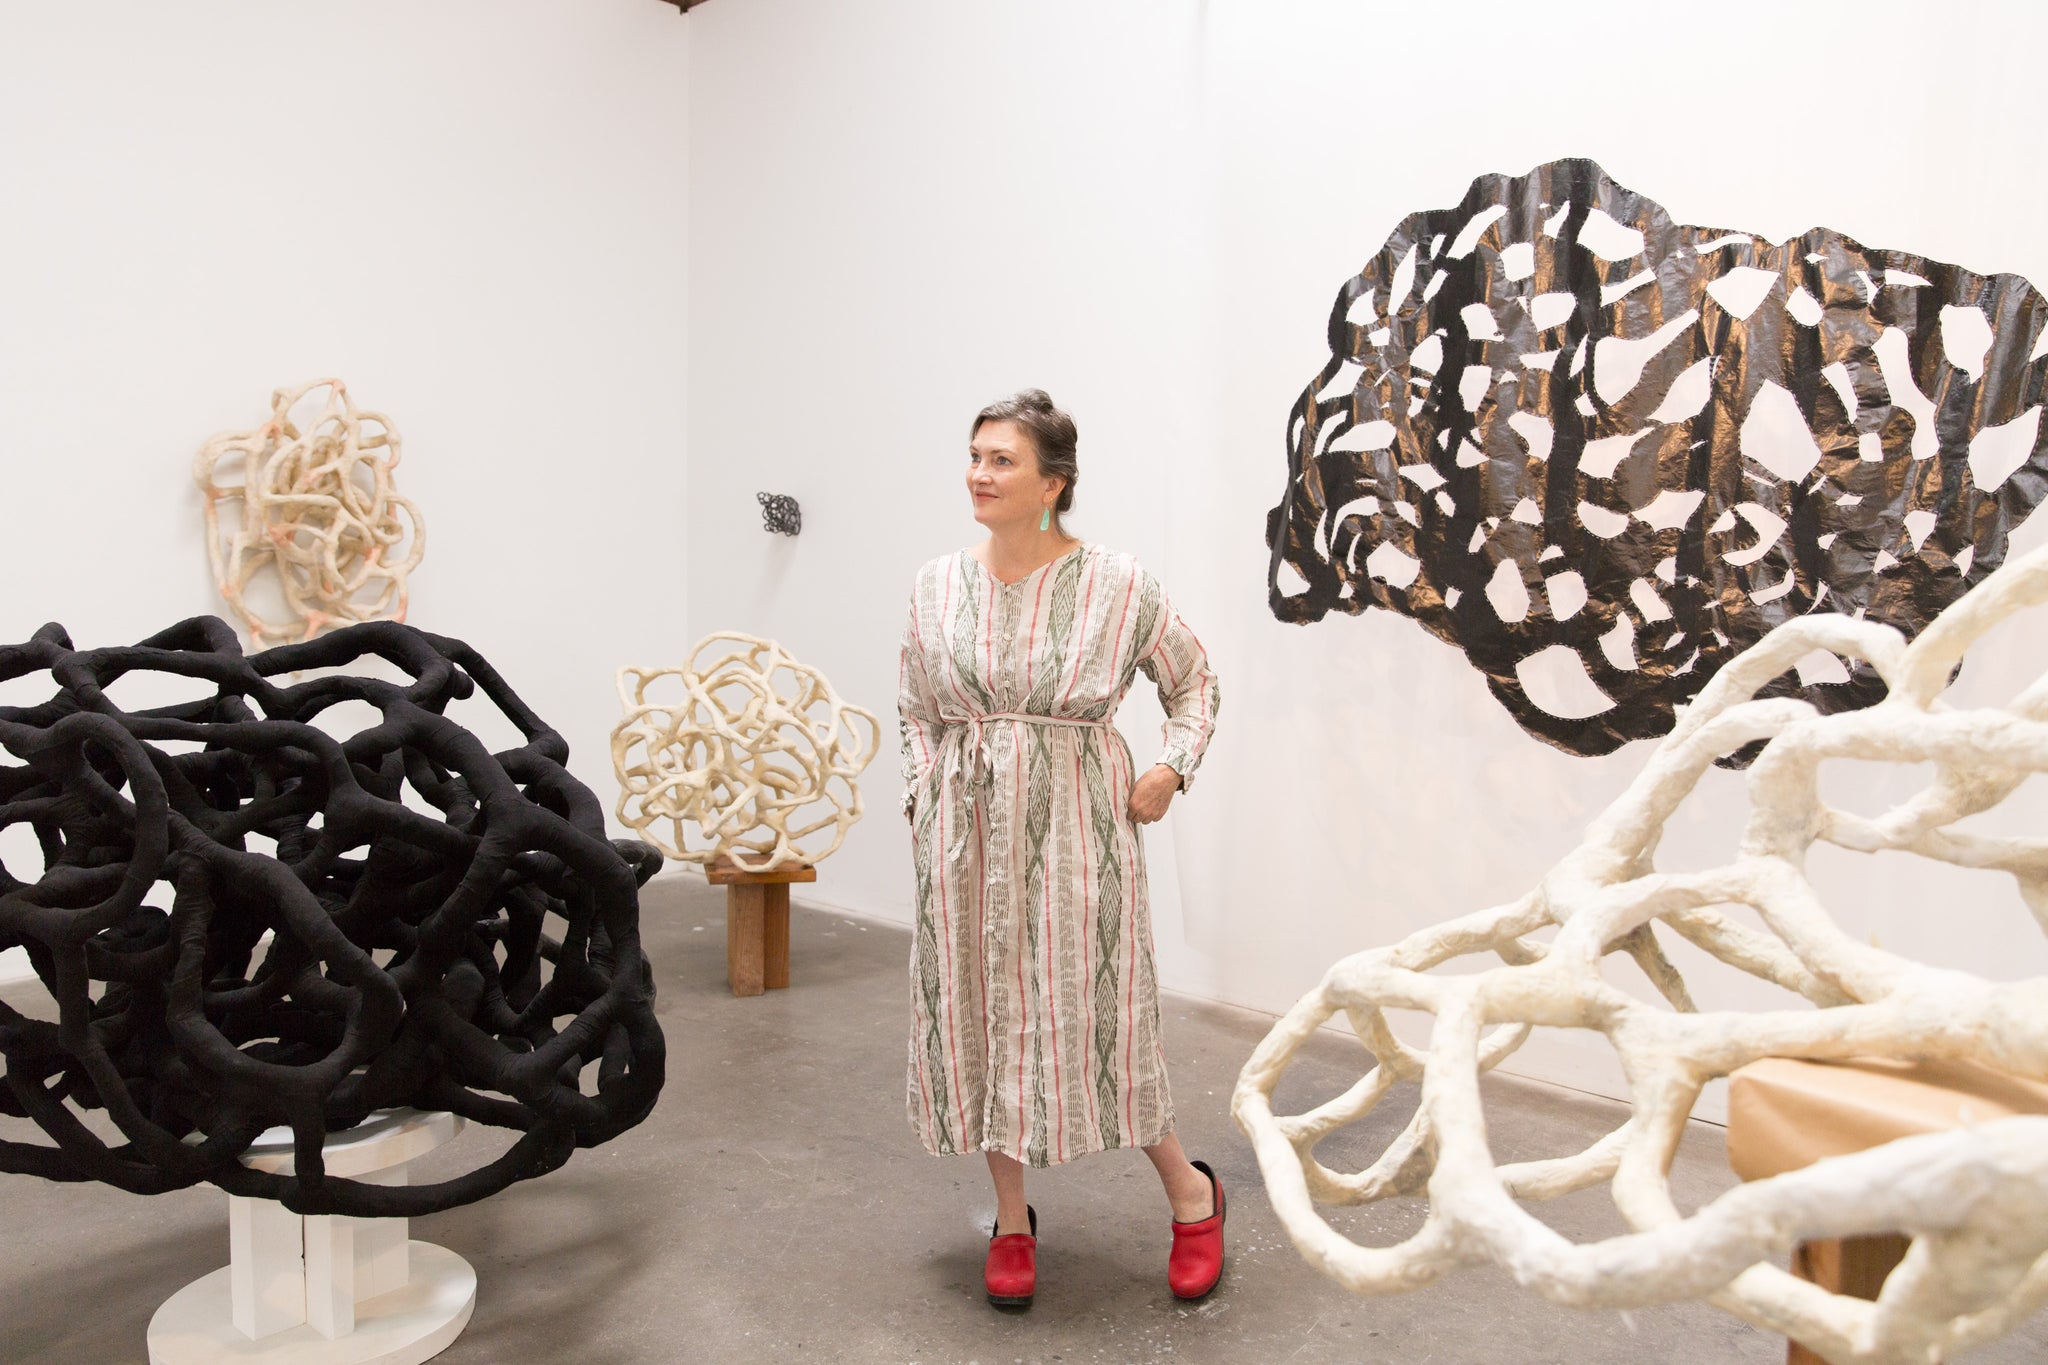 artist, Laura Cooper, surrounded by her sculptures in Los Angeles studio